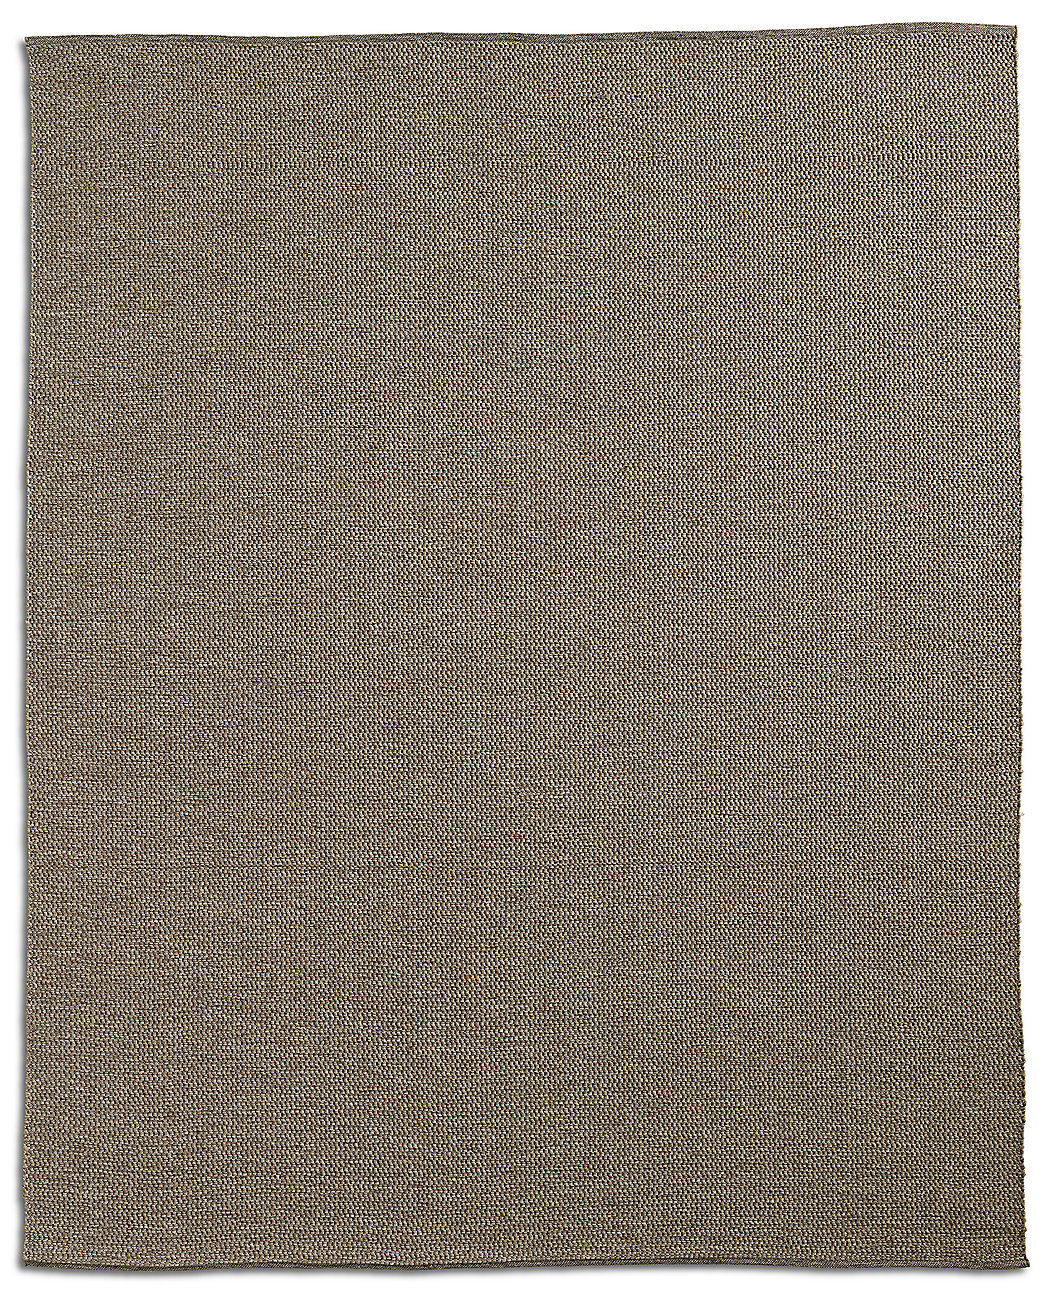 Striated Basket Weave Outdoor Rug - Marled Mocha